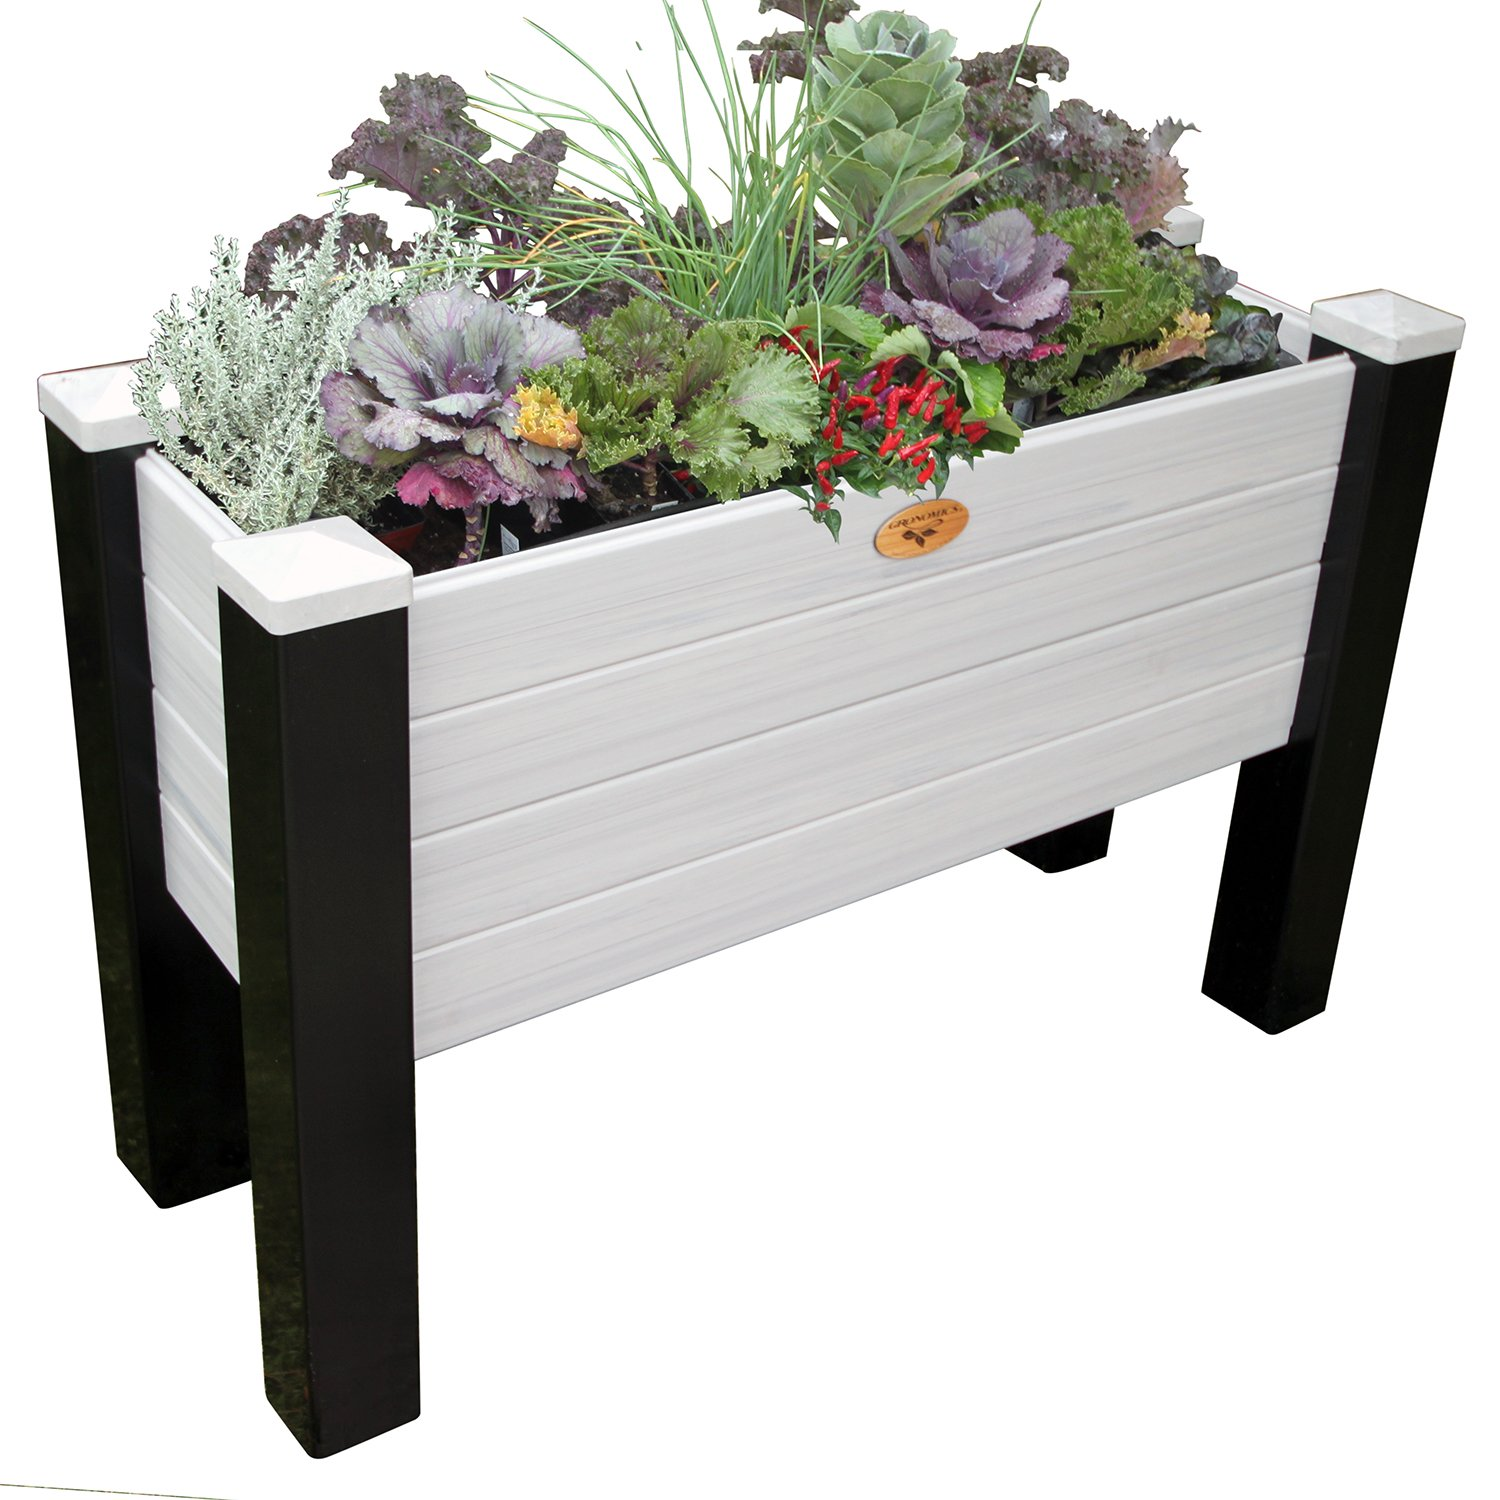 Gronomics MFEGB 18-48 BG Maintenance Free Elevated Garden Bed, 18'' x 48'' x 32''/12.5'', Black/Gray by Gronomics